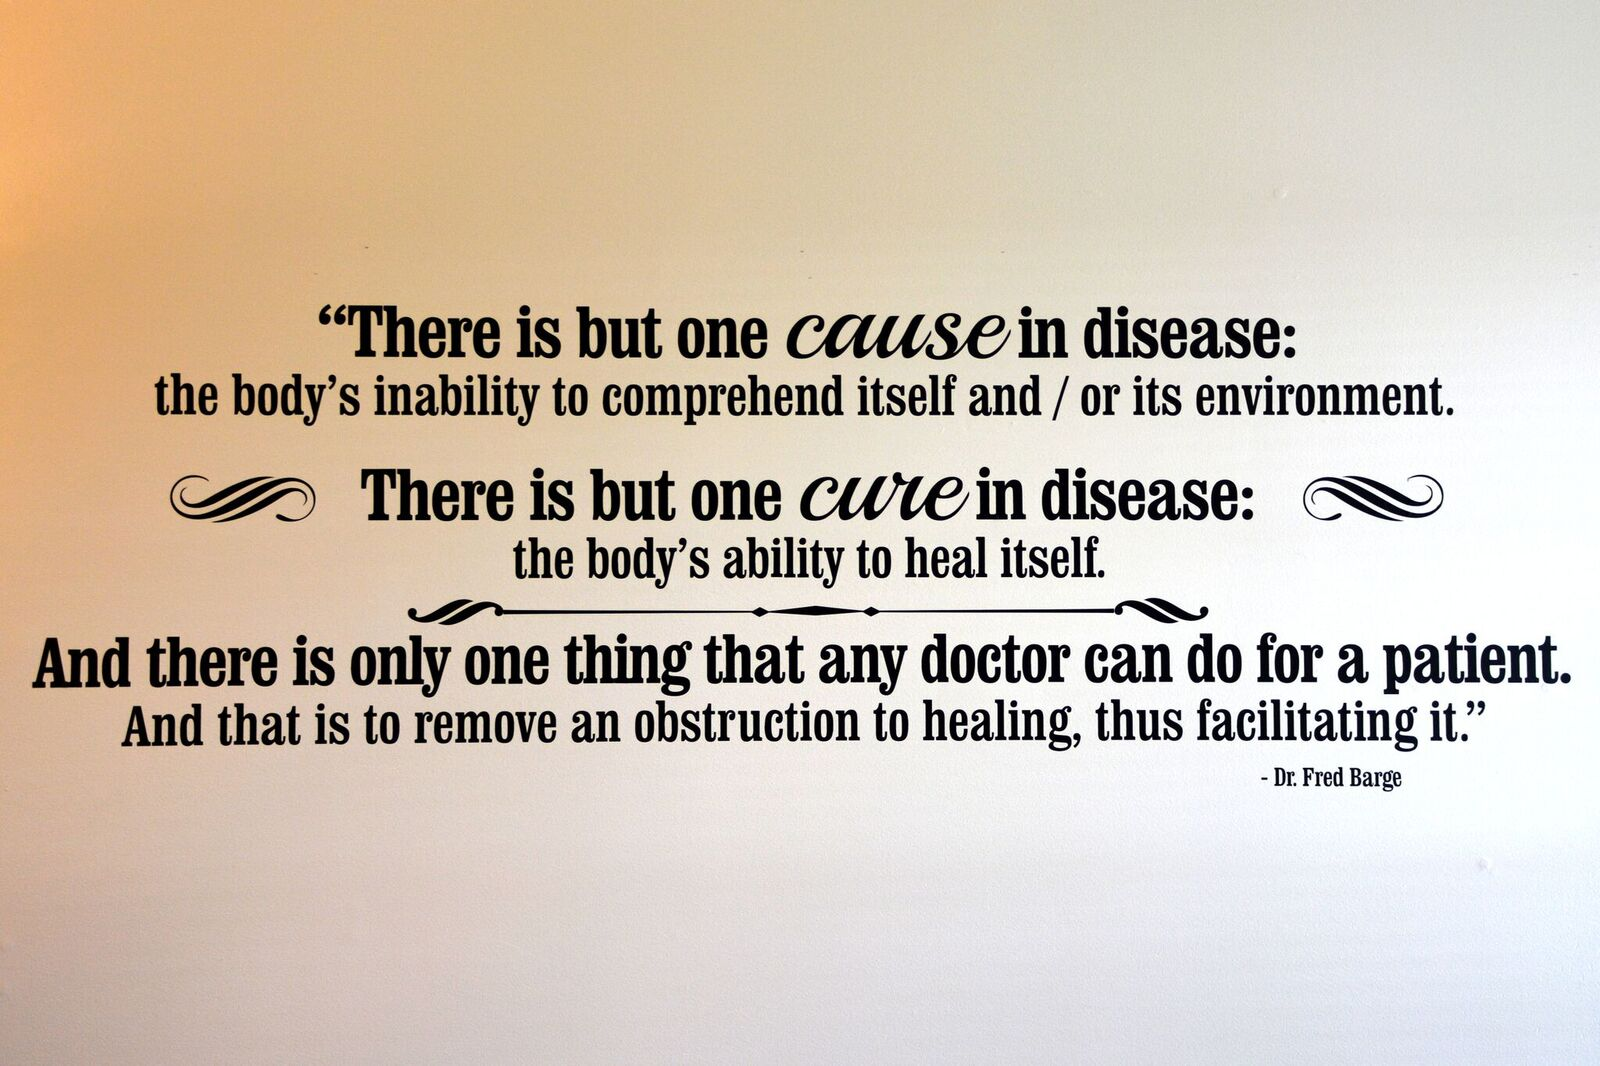 There is but one cause in disease: the body's inability to comprehend itself and/or its environment. There is but one cure in disease: the body's ability to heal itself. And there is only one thing that any doctor can do for a patient. And that is to remove an obstruction to healing, thus facilitating it. - Dr. Fred Barge